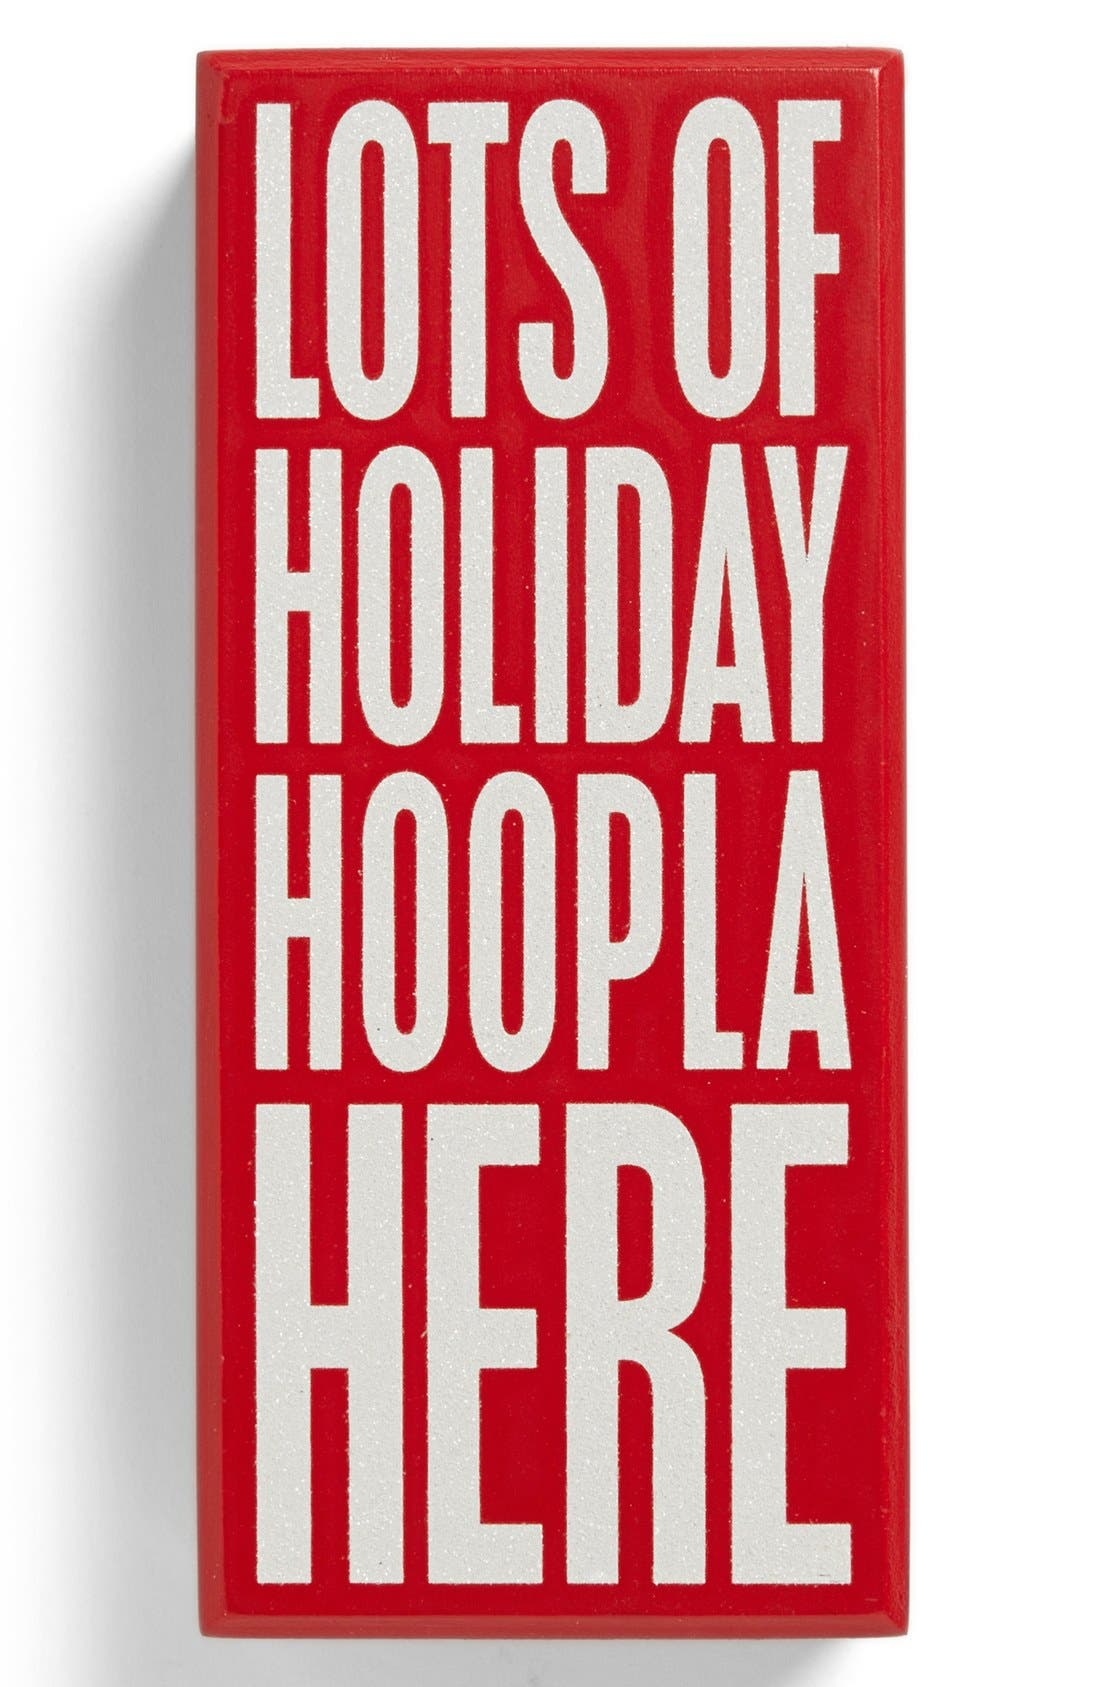 Alternate Image 1 Selected - Primitives by Kathy 'Holiday Hoopla' Box Sign